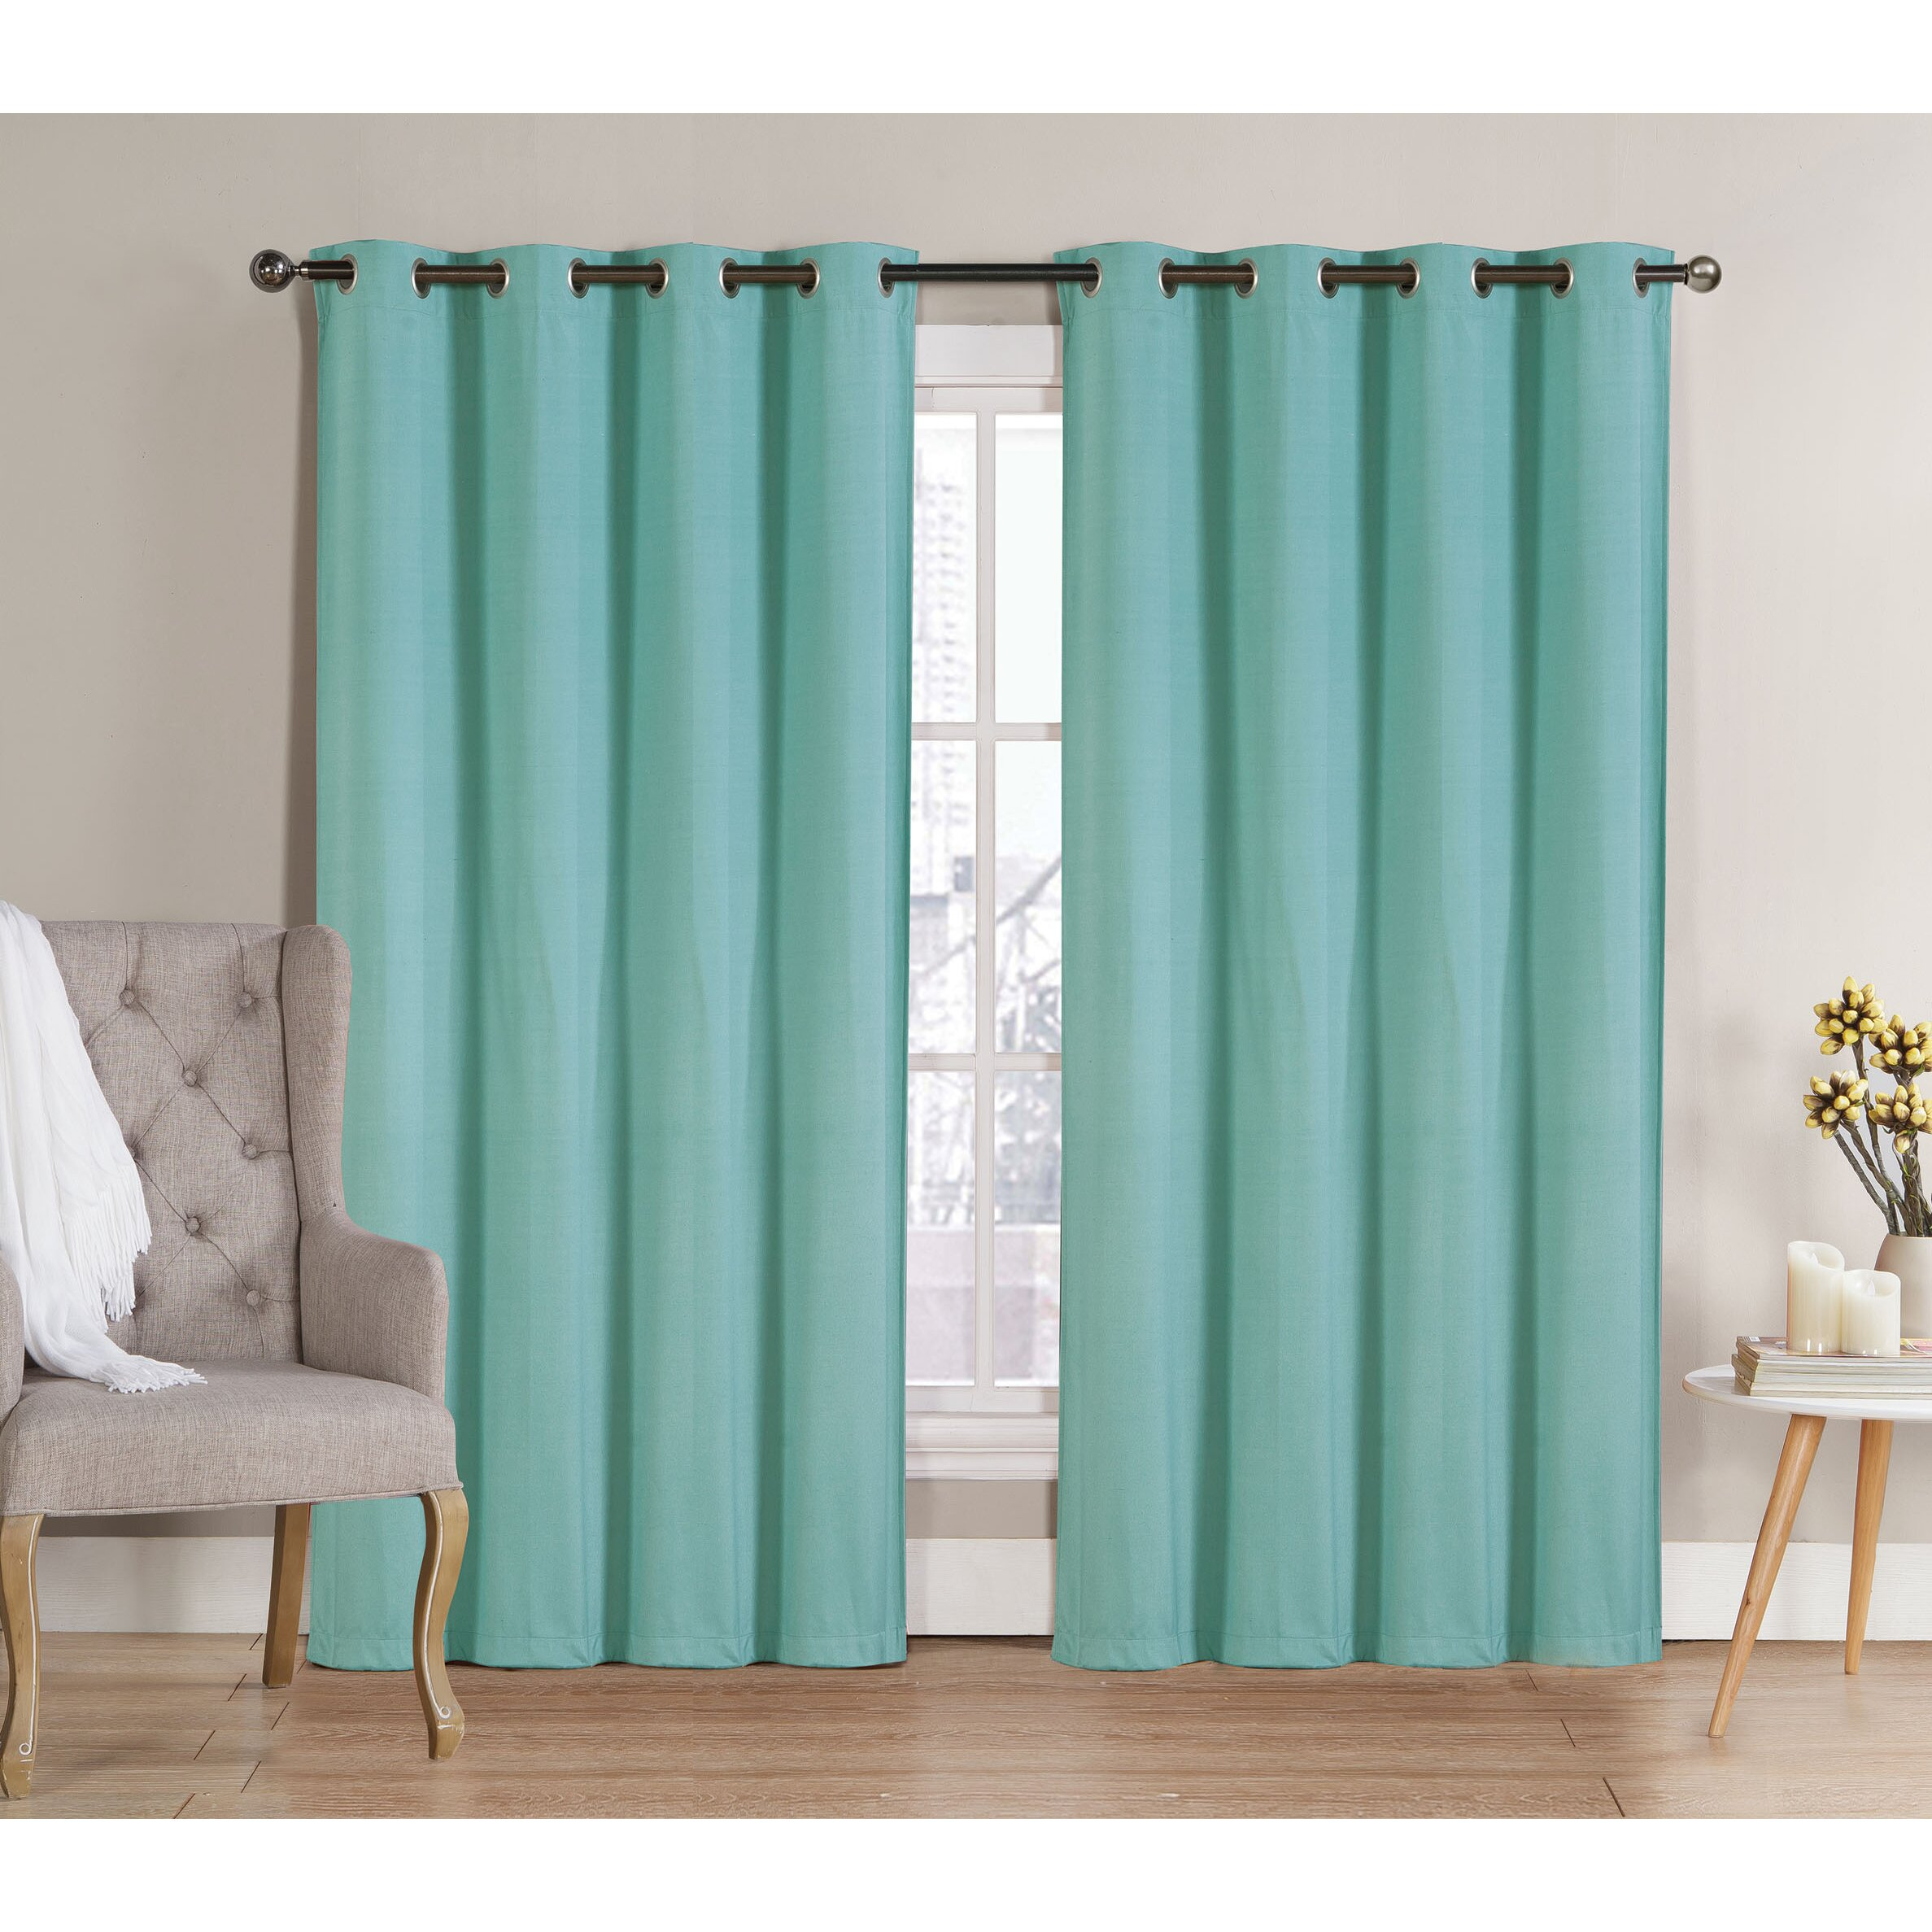 Ruthy 39 S Outlet Blackout Curtain Panels Reviews Wayfair